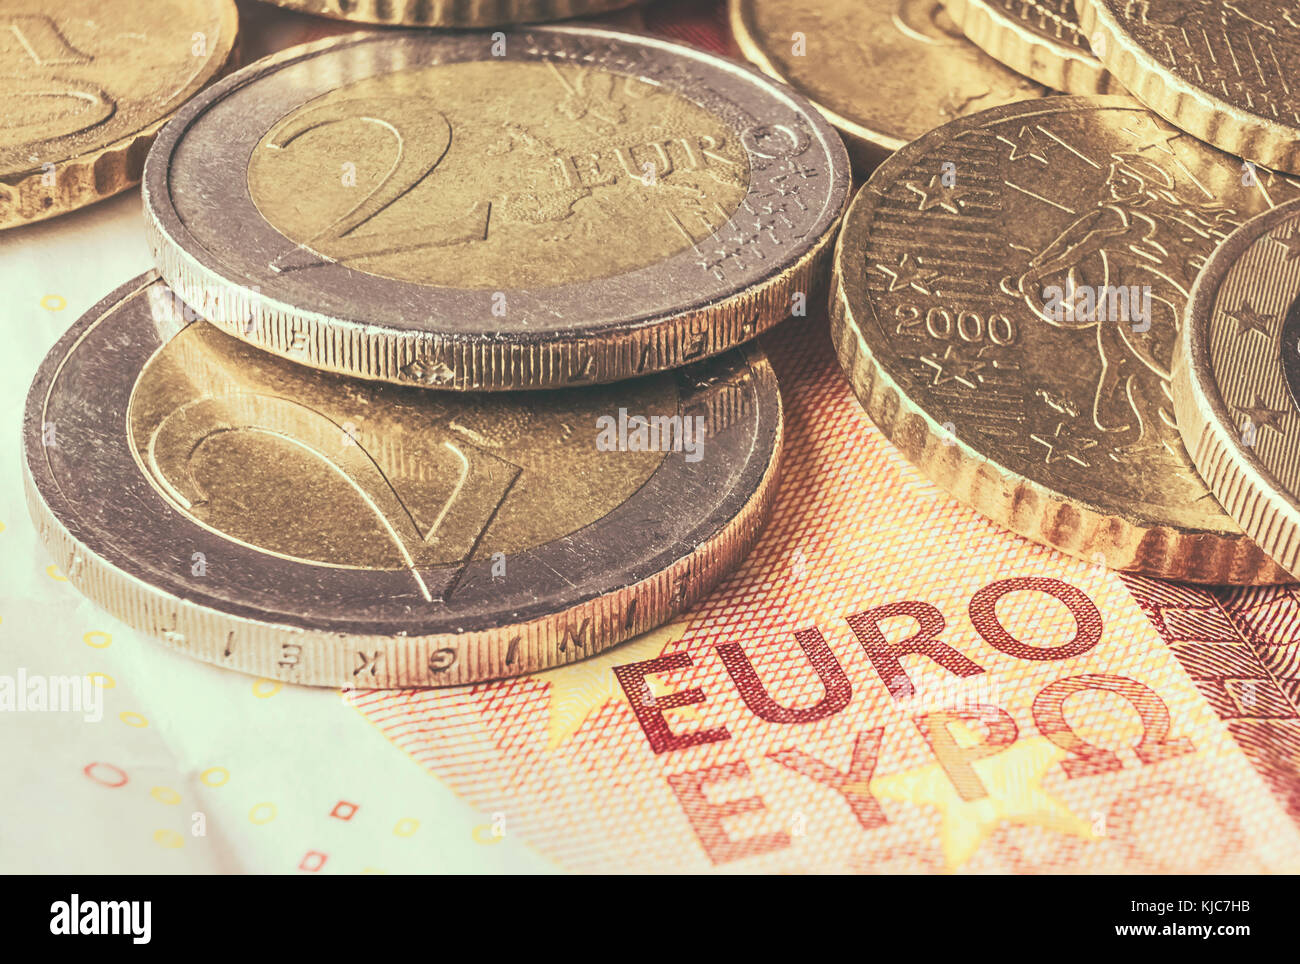 Some coins of euro on a banknote of ten euros. - Stock Image